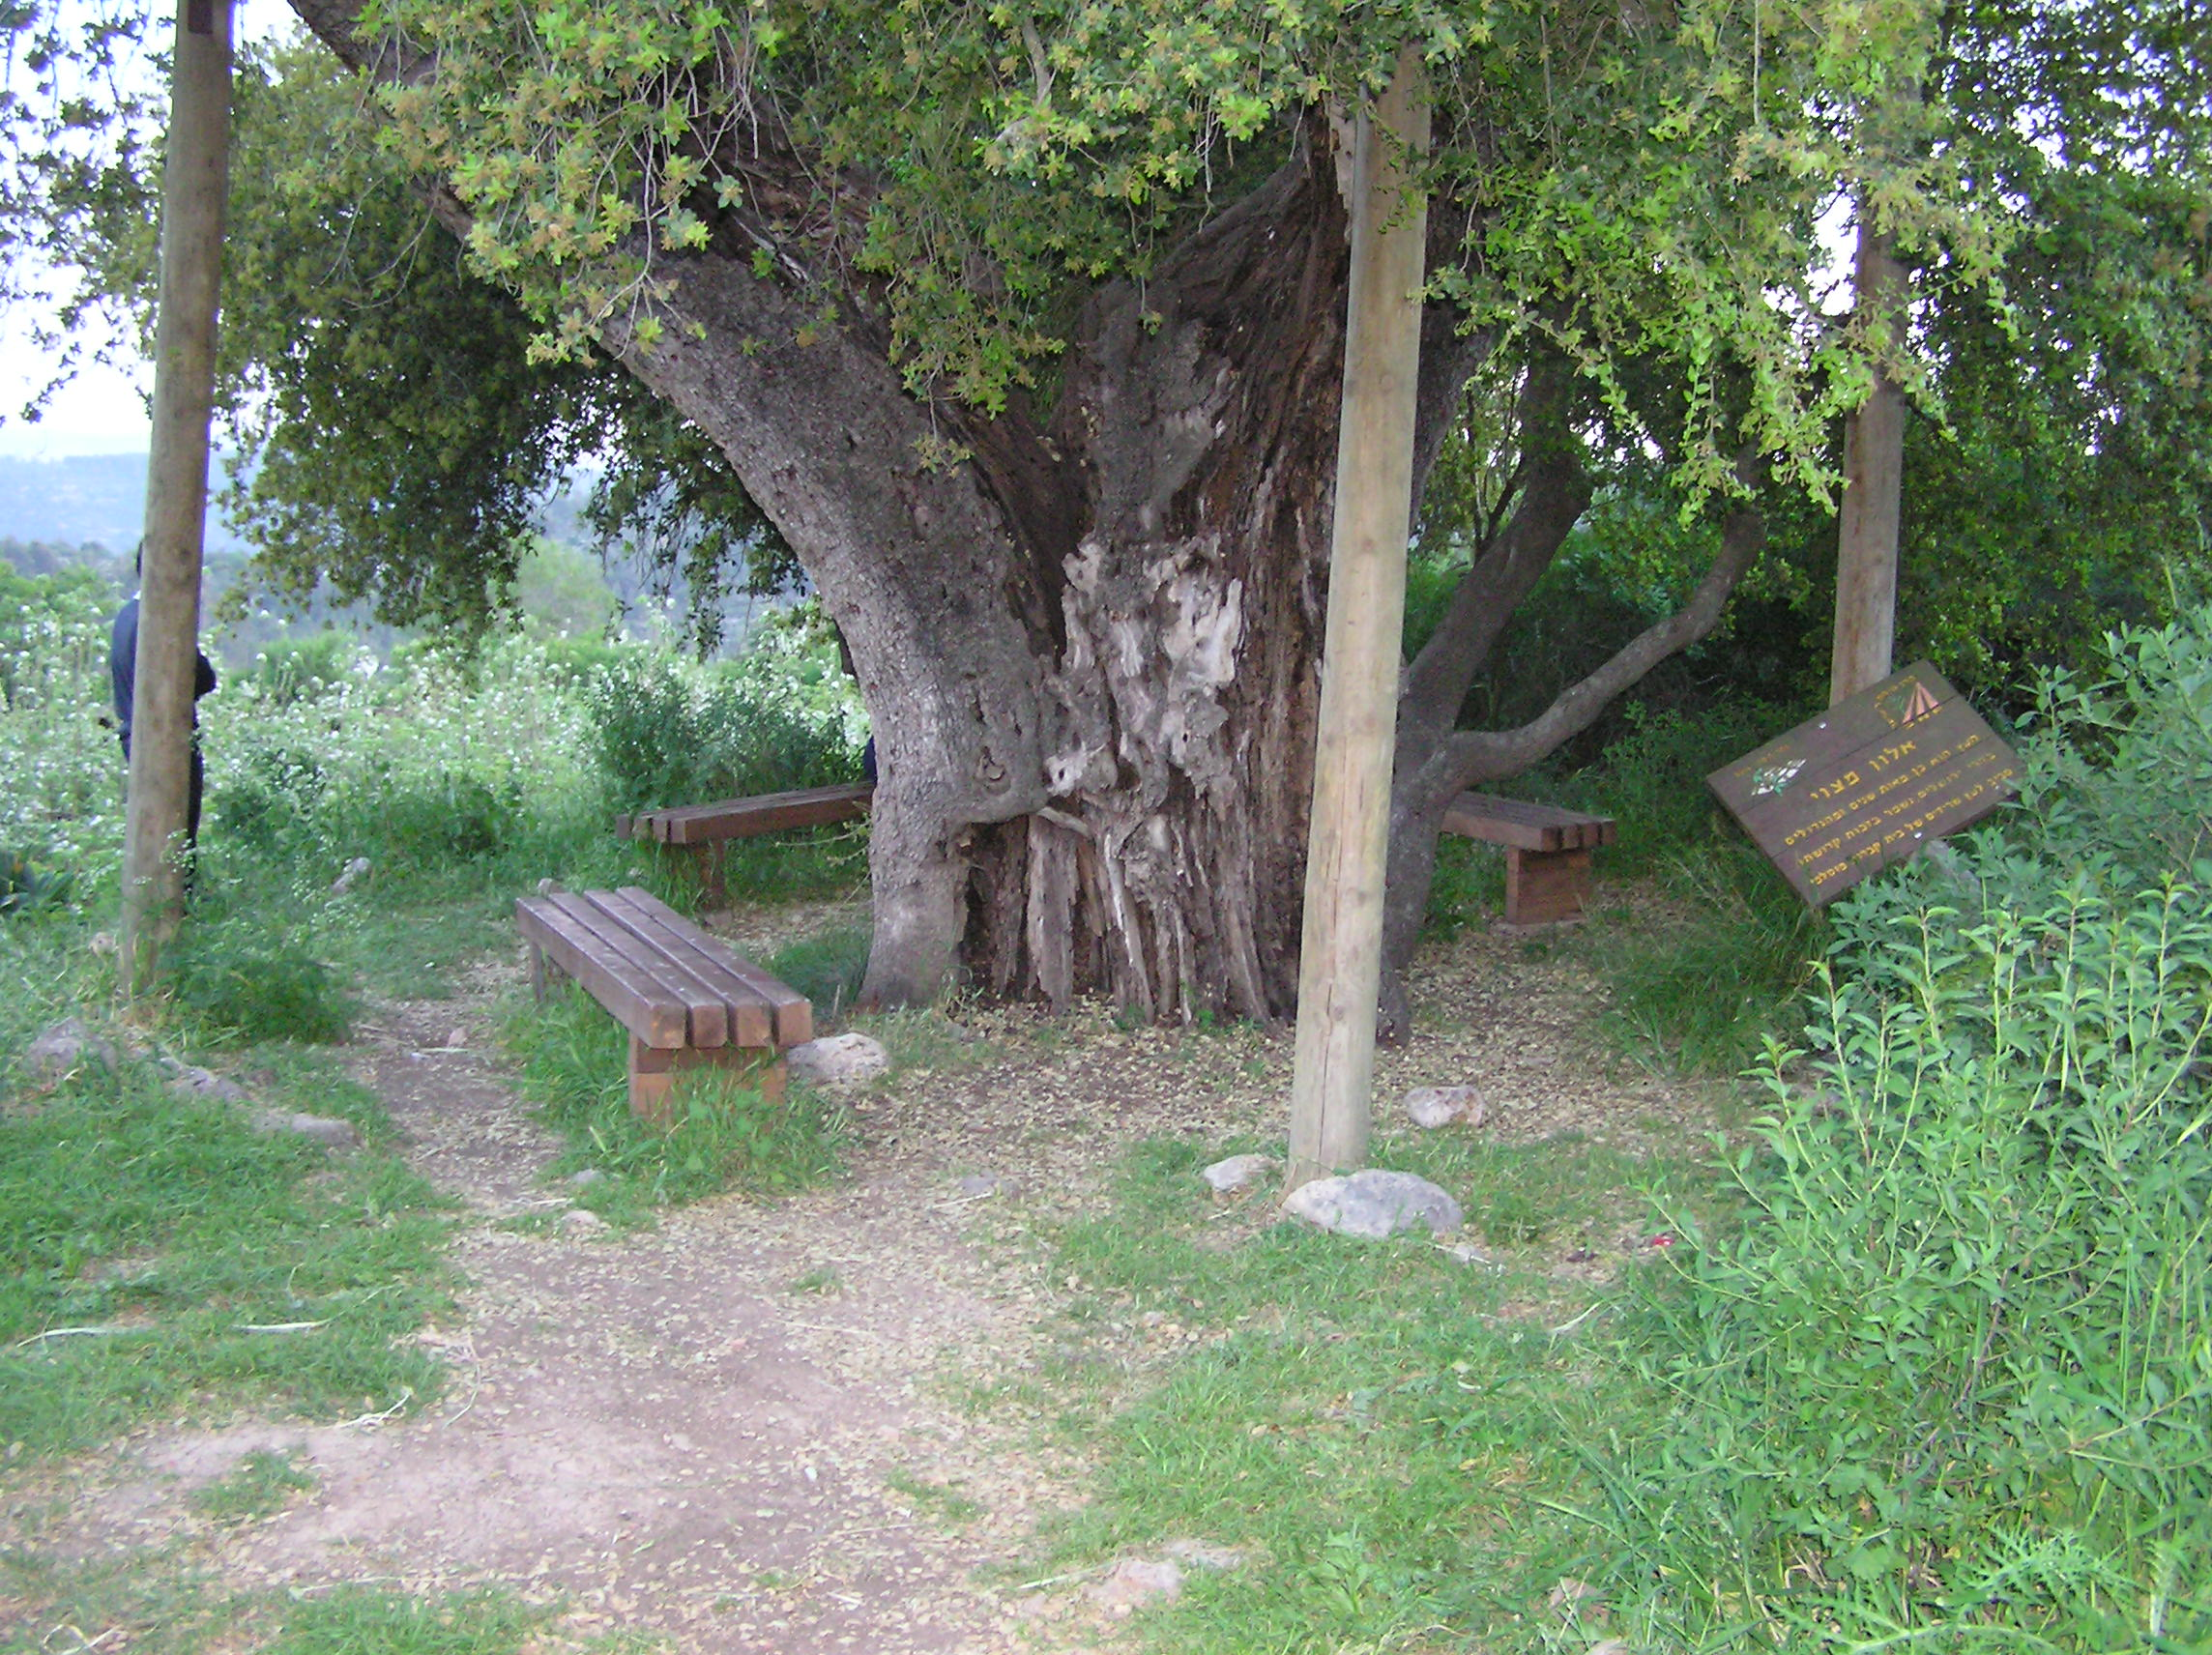 Suba - صوبا : Suba's Ancient Oak Tree (3000 thousand year old) Its Still Standing Next  To The Village Cemetery.